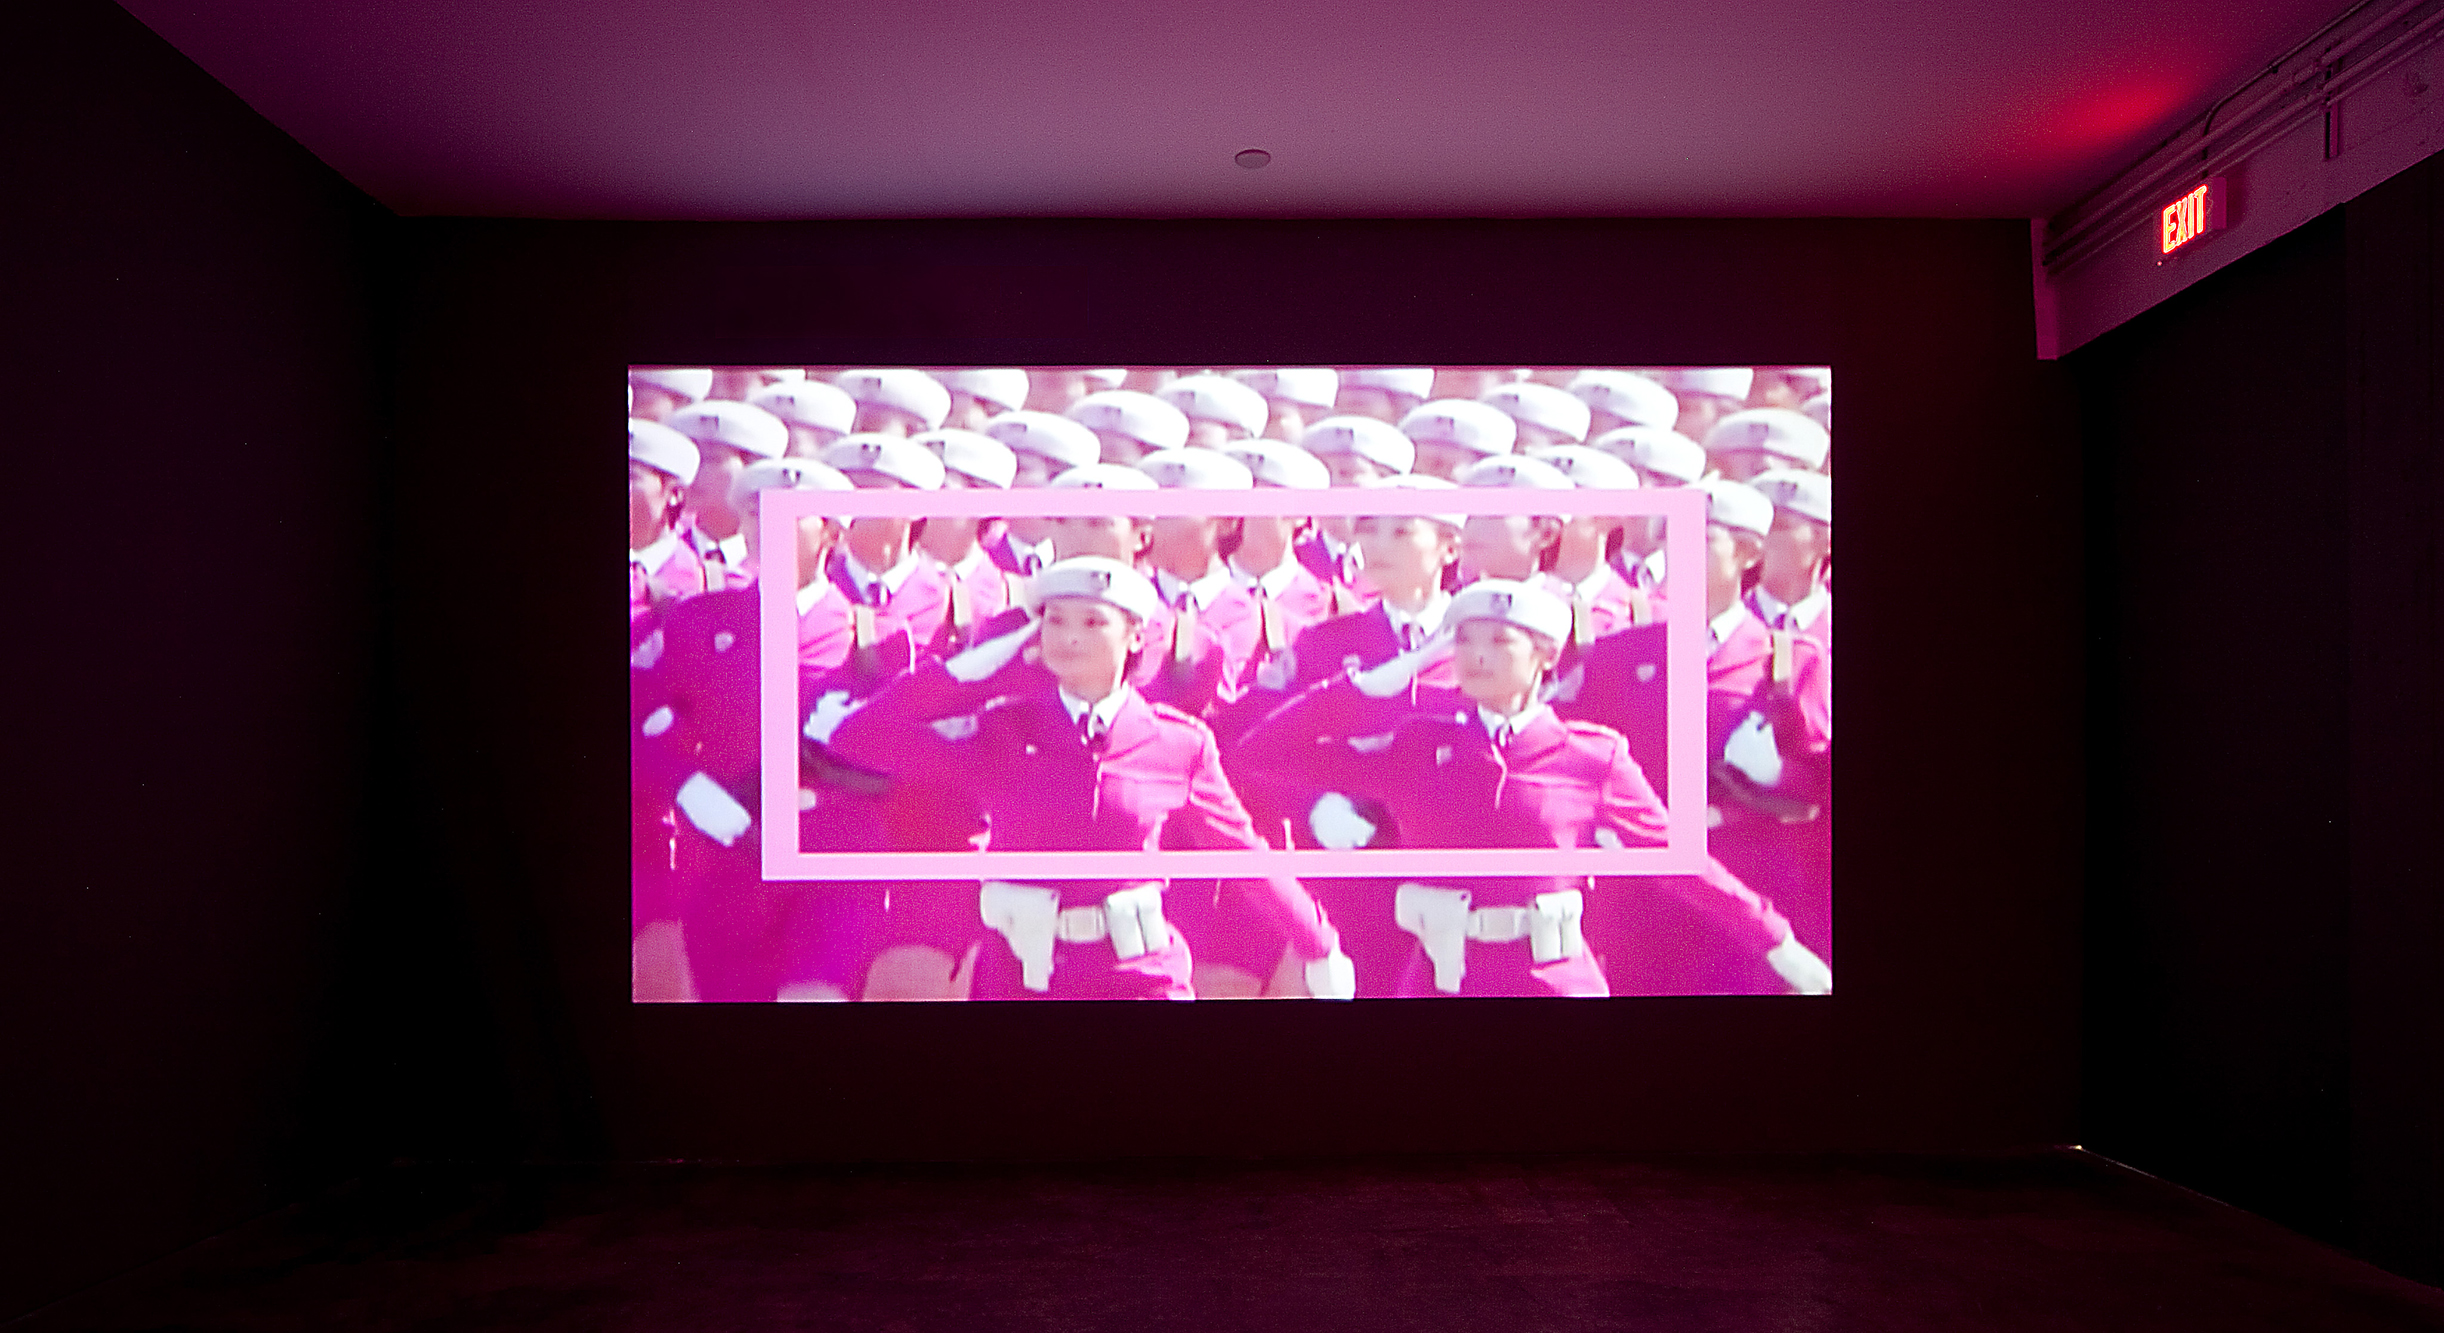 Felecia Chizuko Carlisle, PinkArmyPinkRectangle, 2011